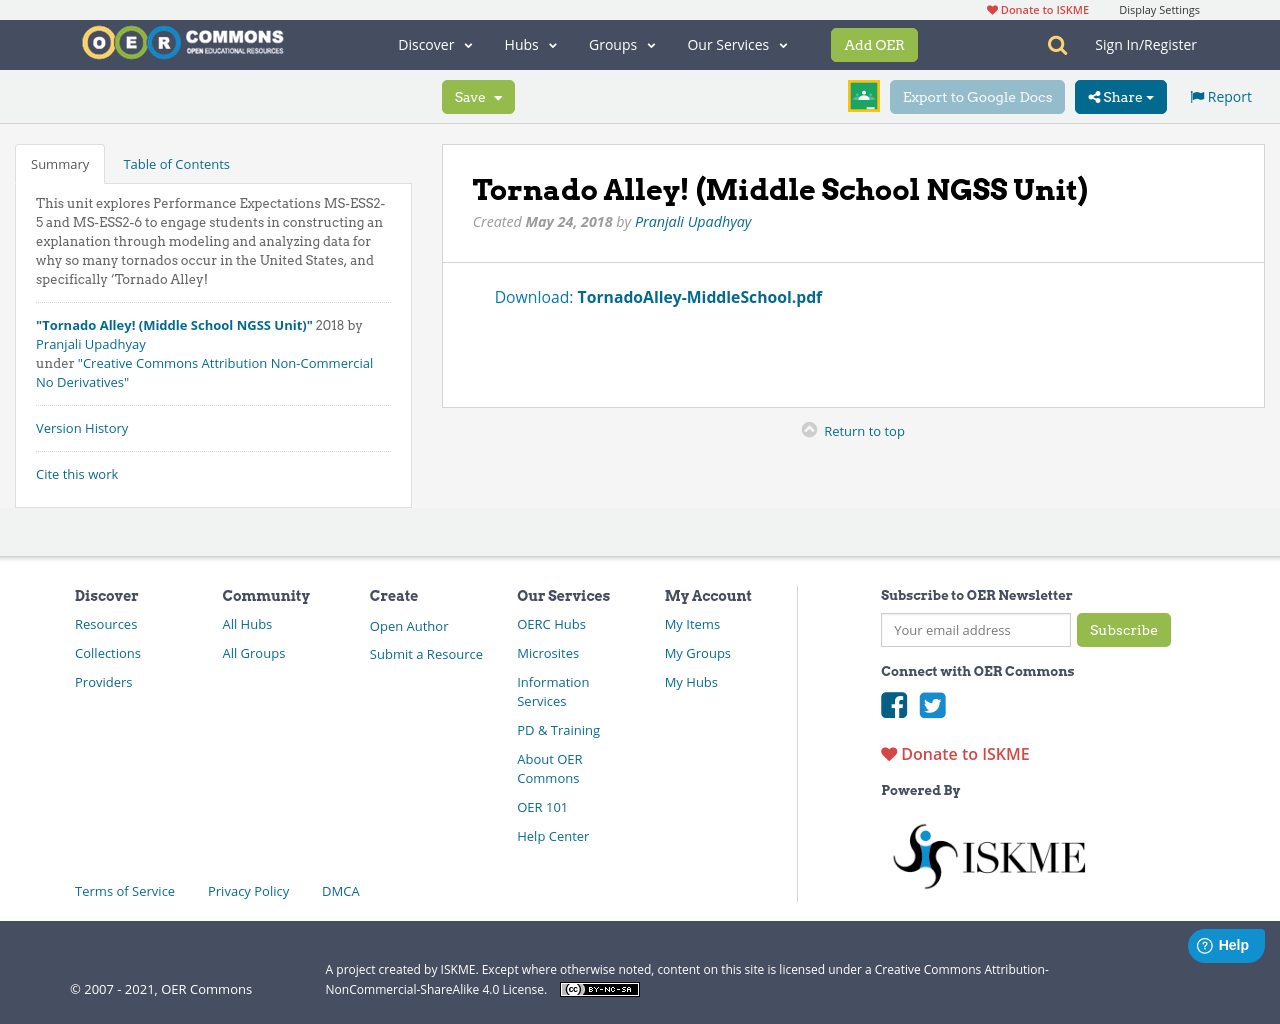 Tornado Alley Middle School Ngss Unit